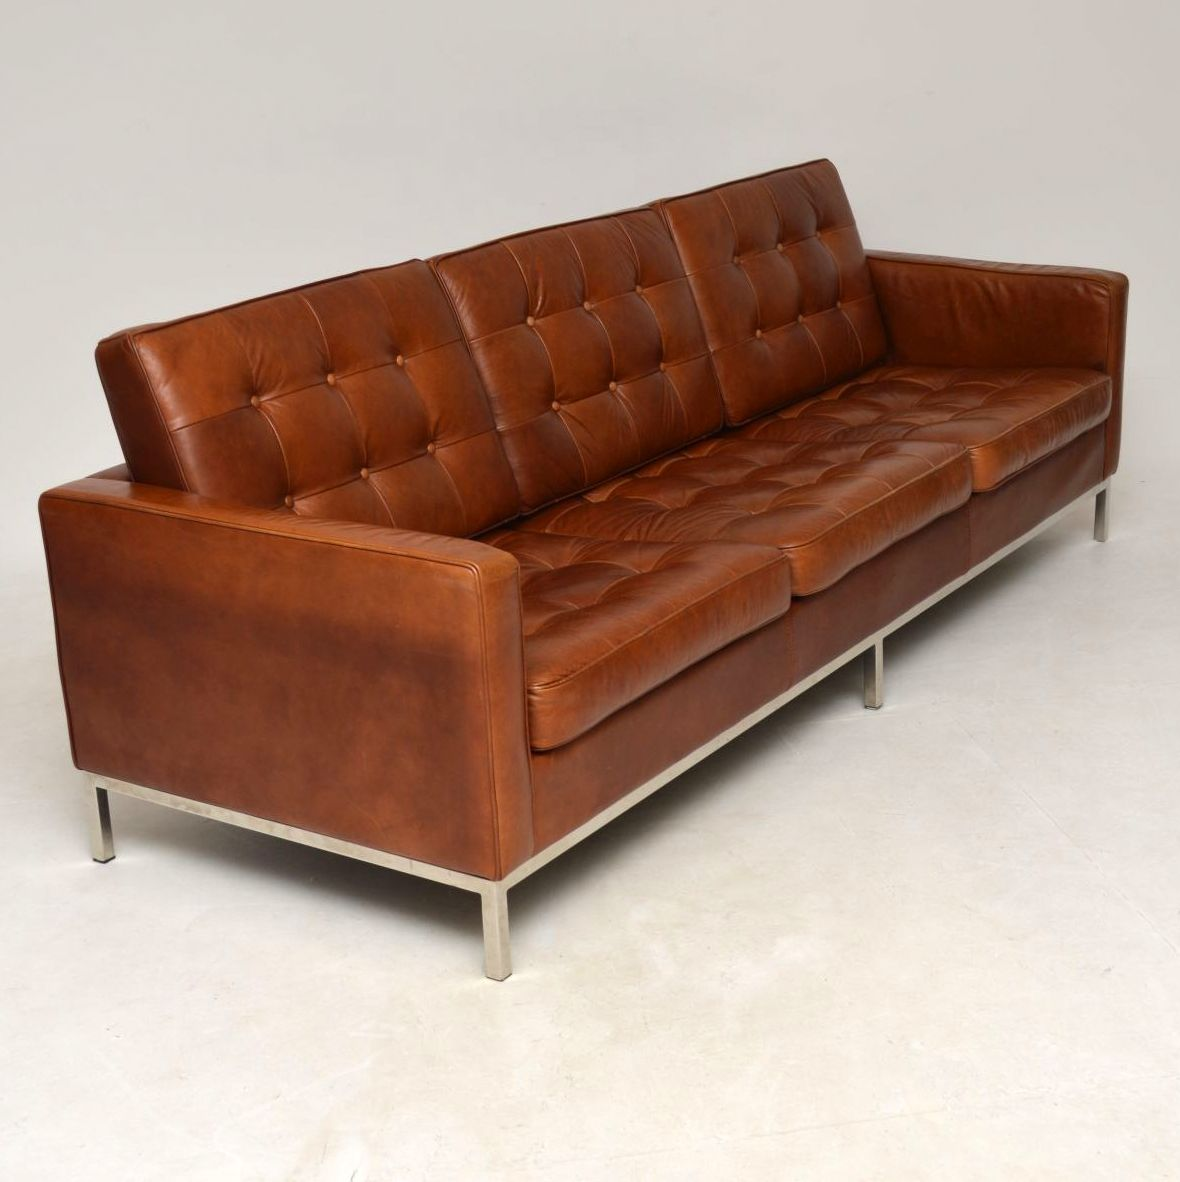 clic design sofa exquisite sofas vintage knoll before after